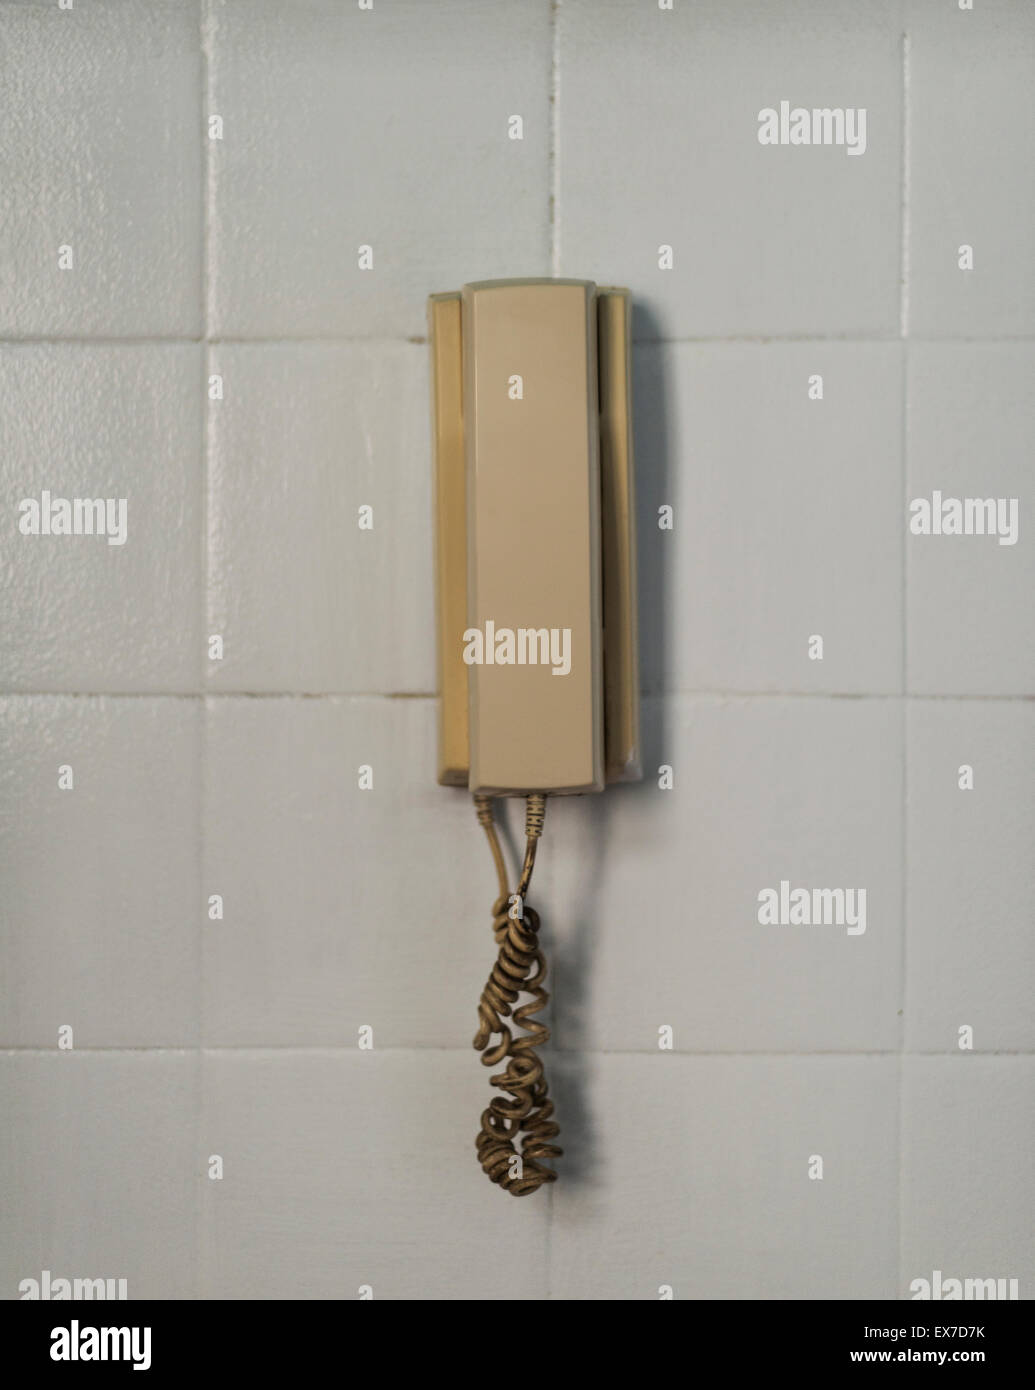 Phone on the Wall - Stock Image